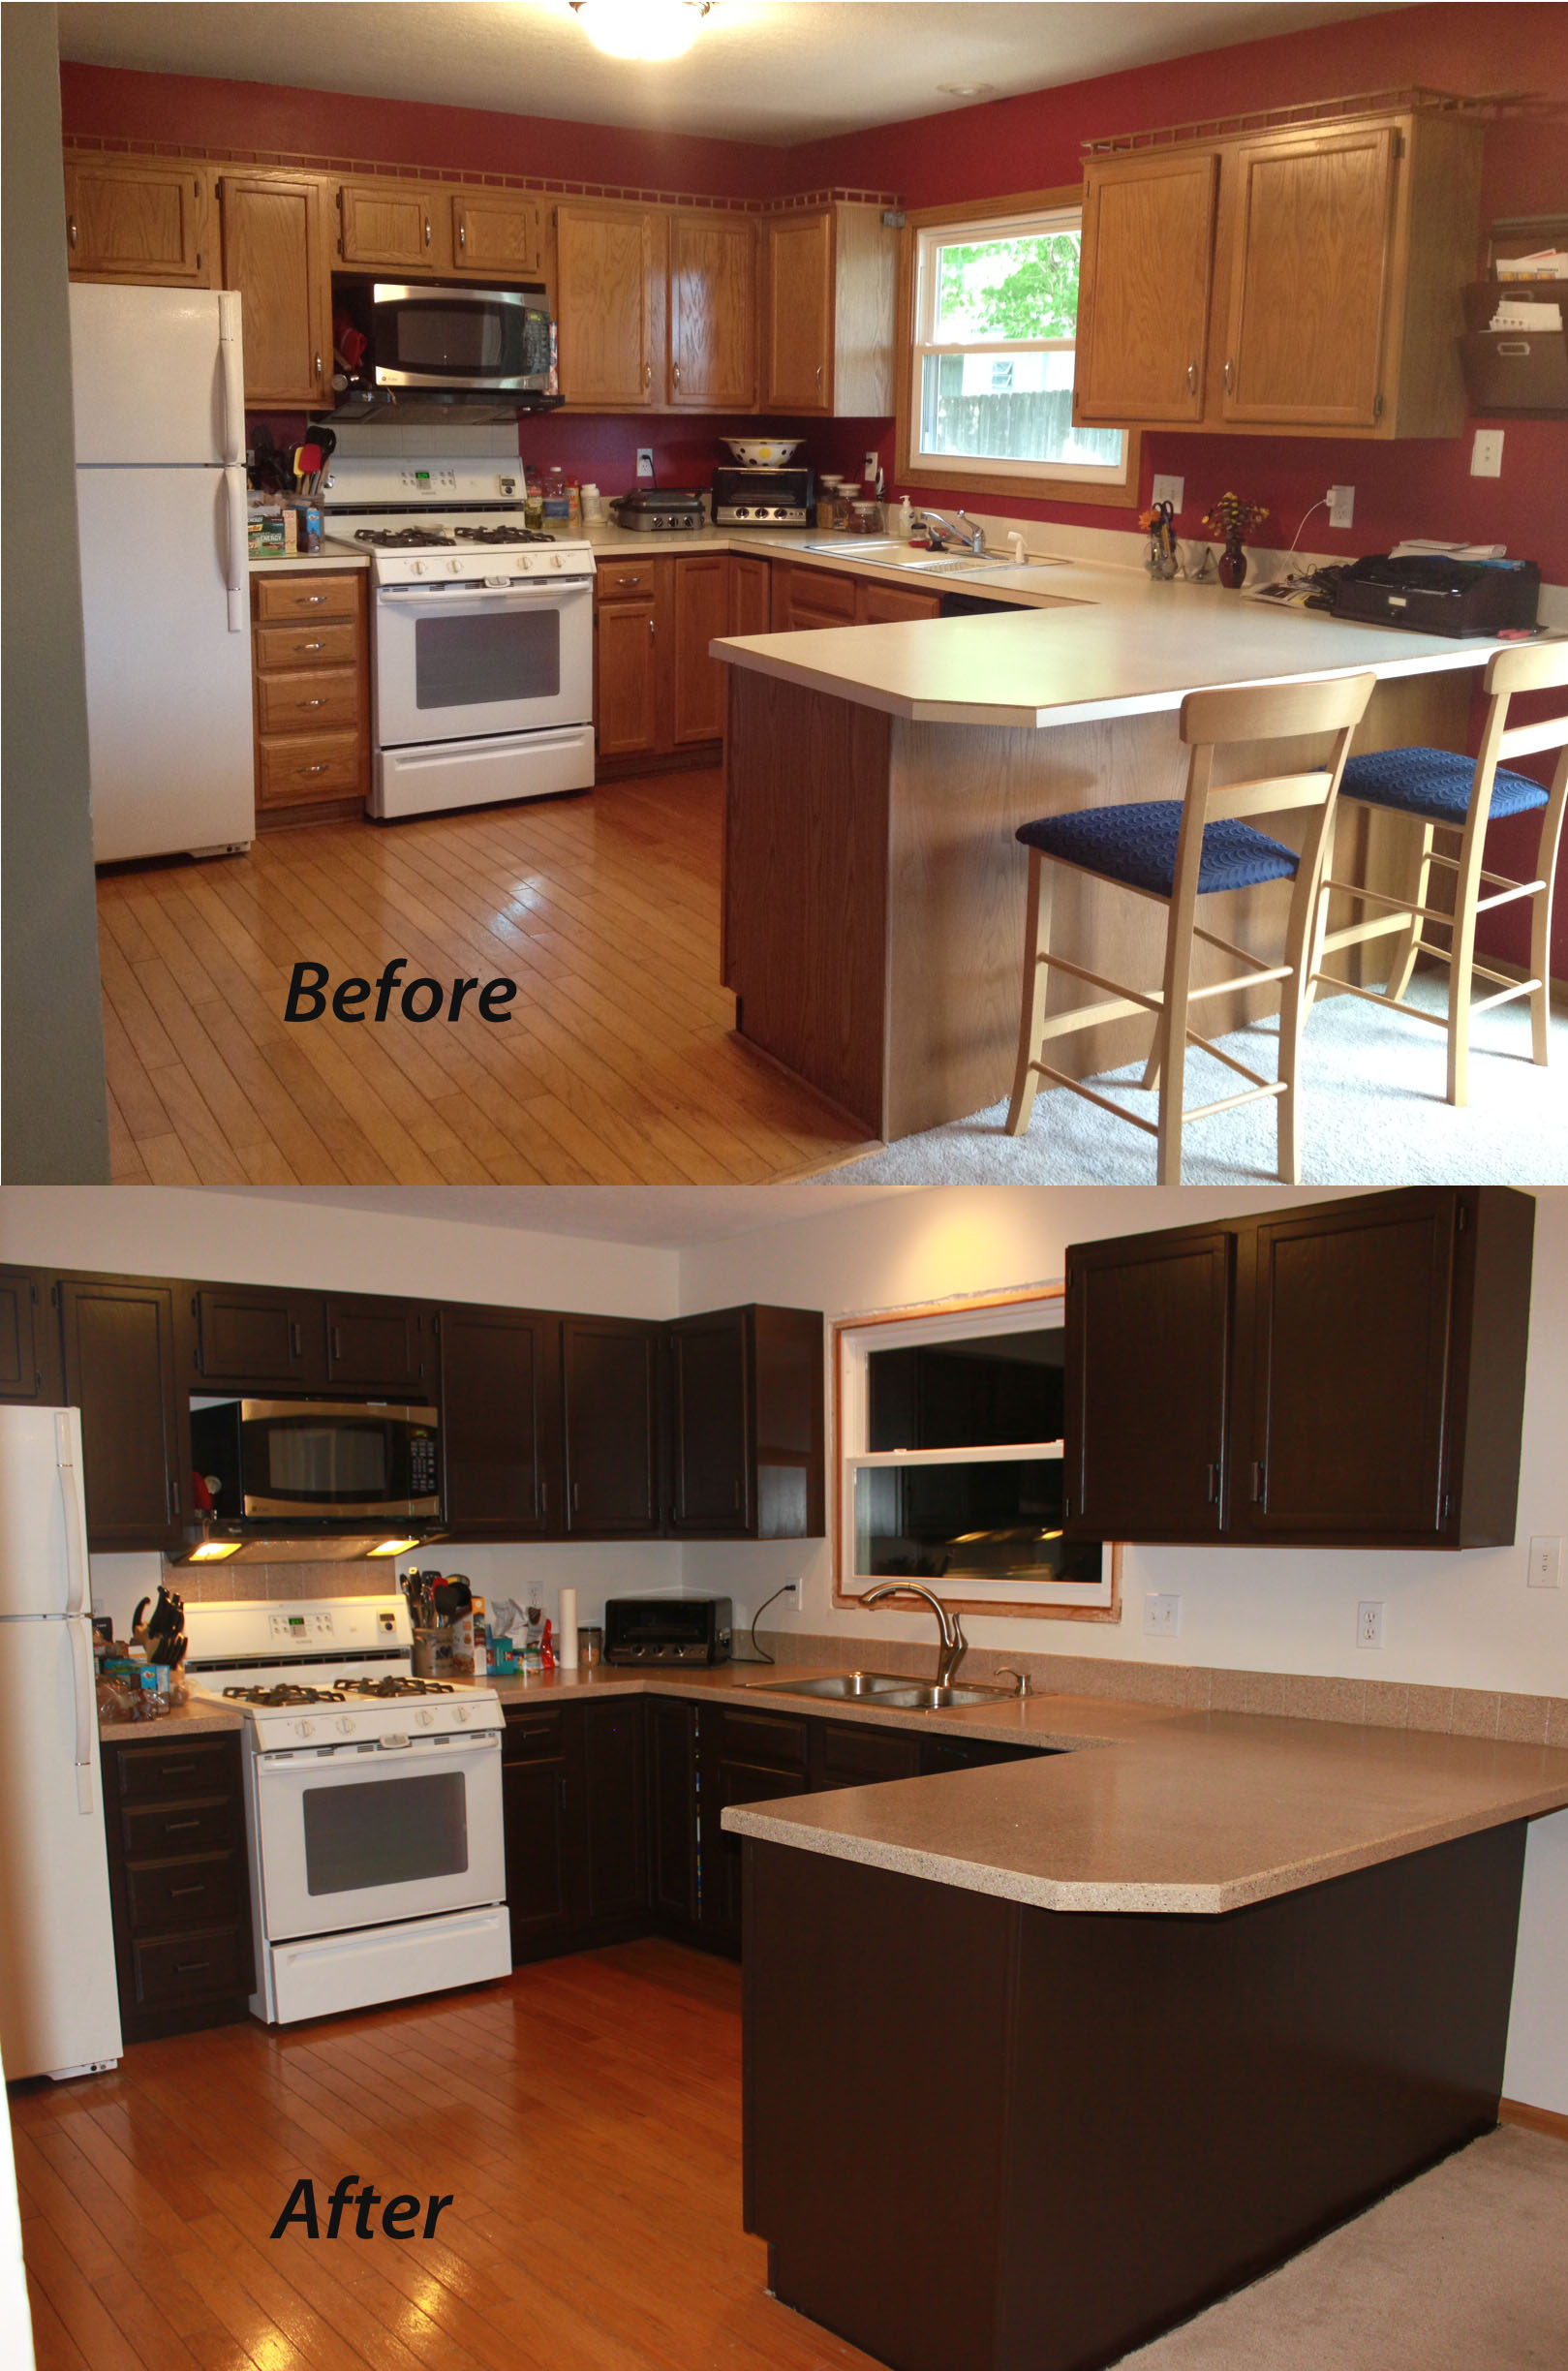 painting kitchen cabinets sometimes homemade ForKitchen Cabinets Before And After